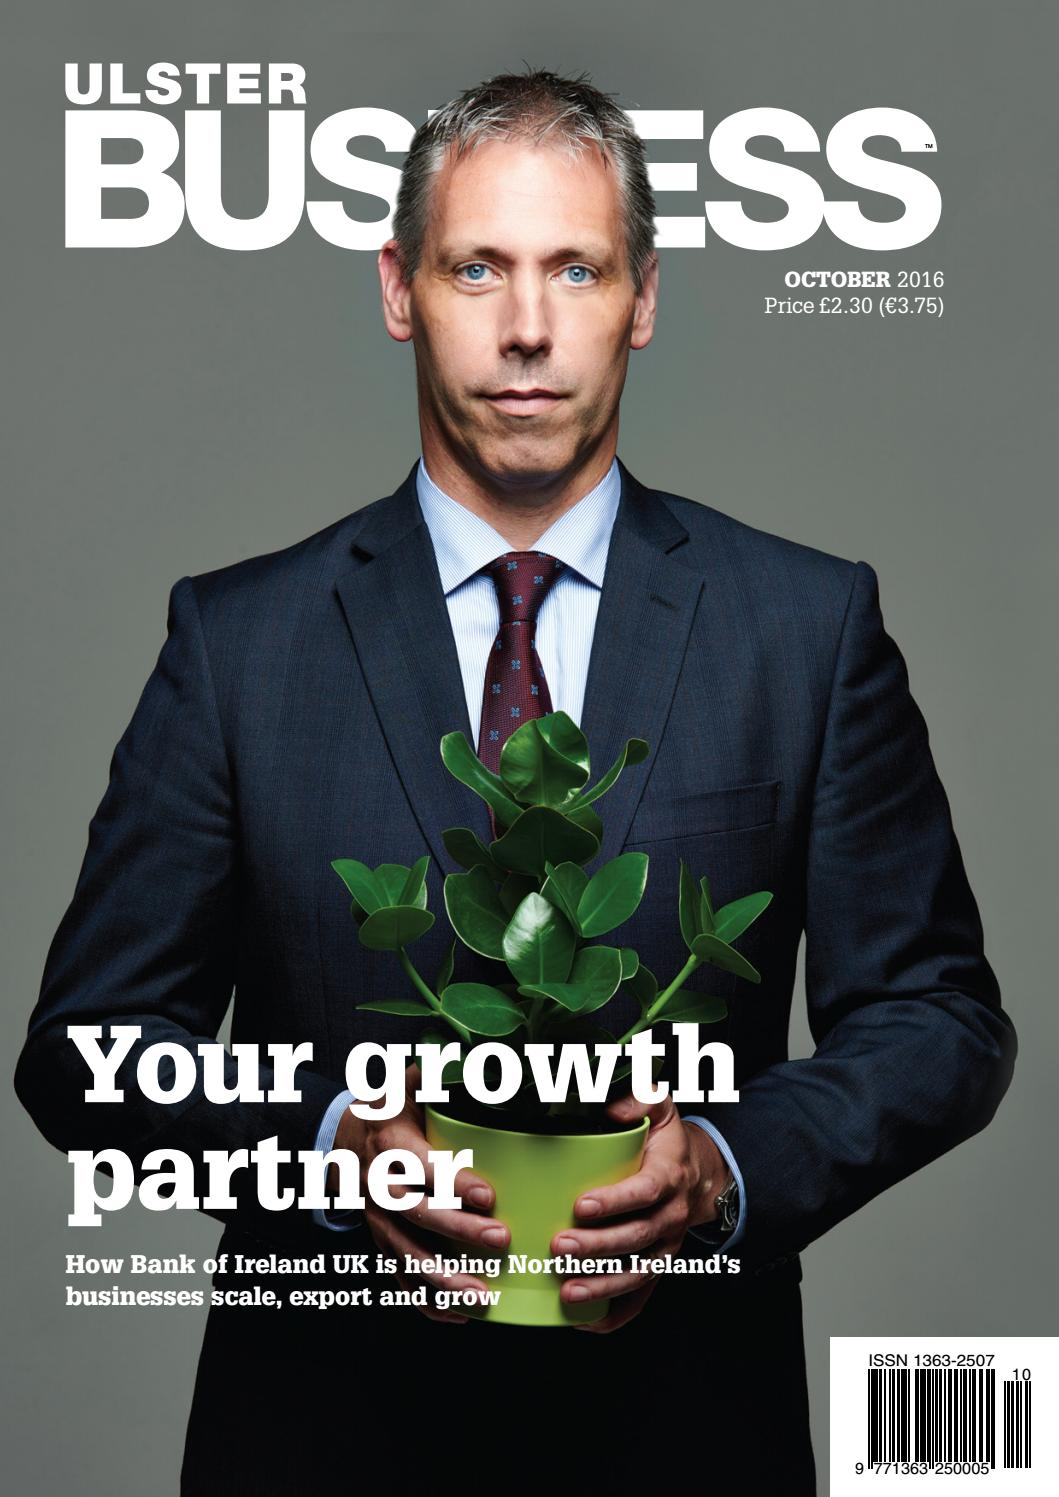 Ulster Business - October 2016 by Ulster Business - issuu